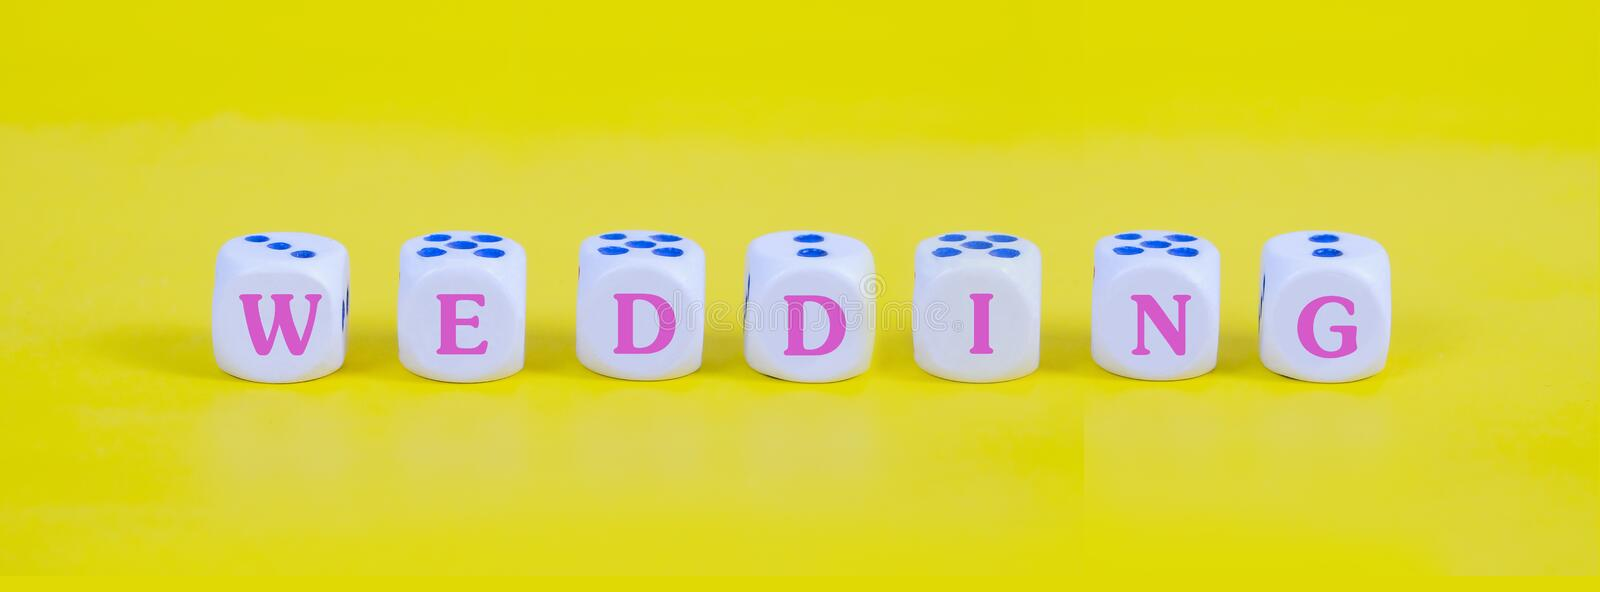 Wedding word on white dice on color background, royalty free stock image